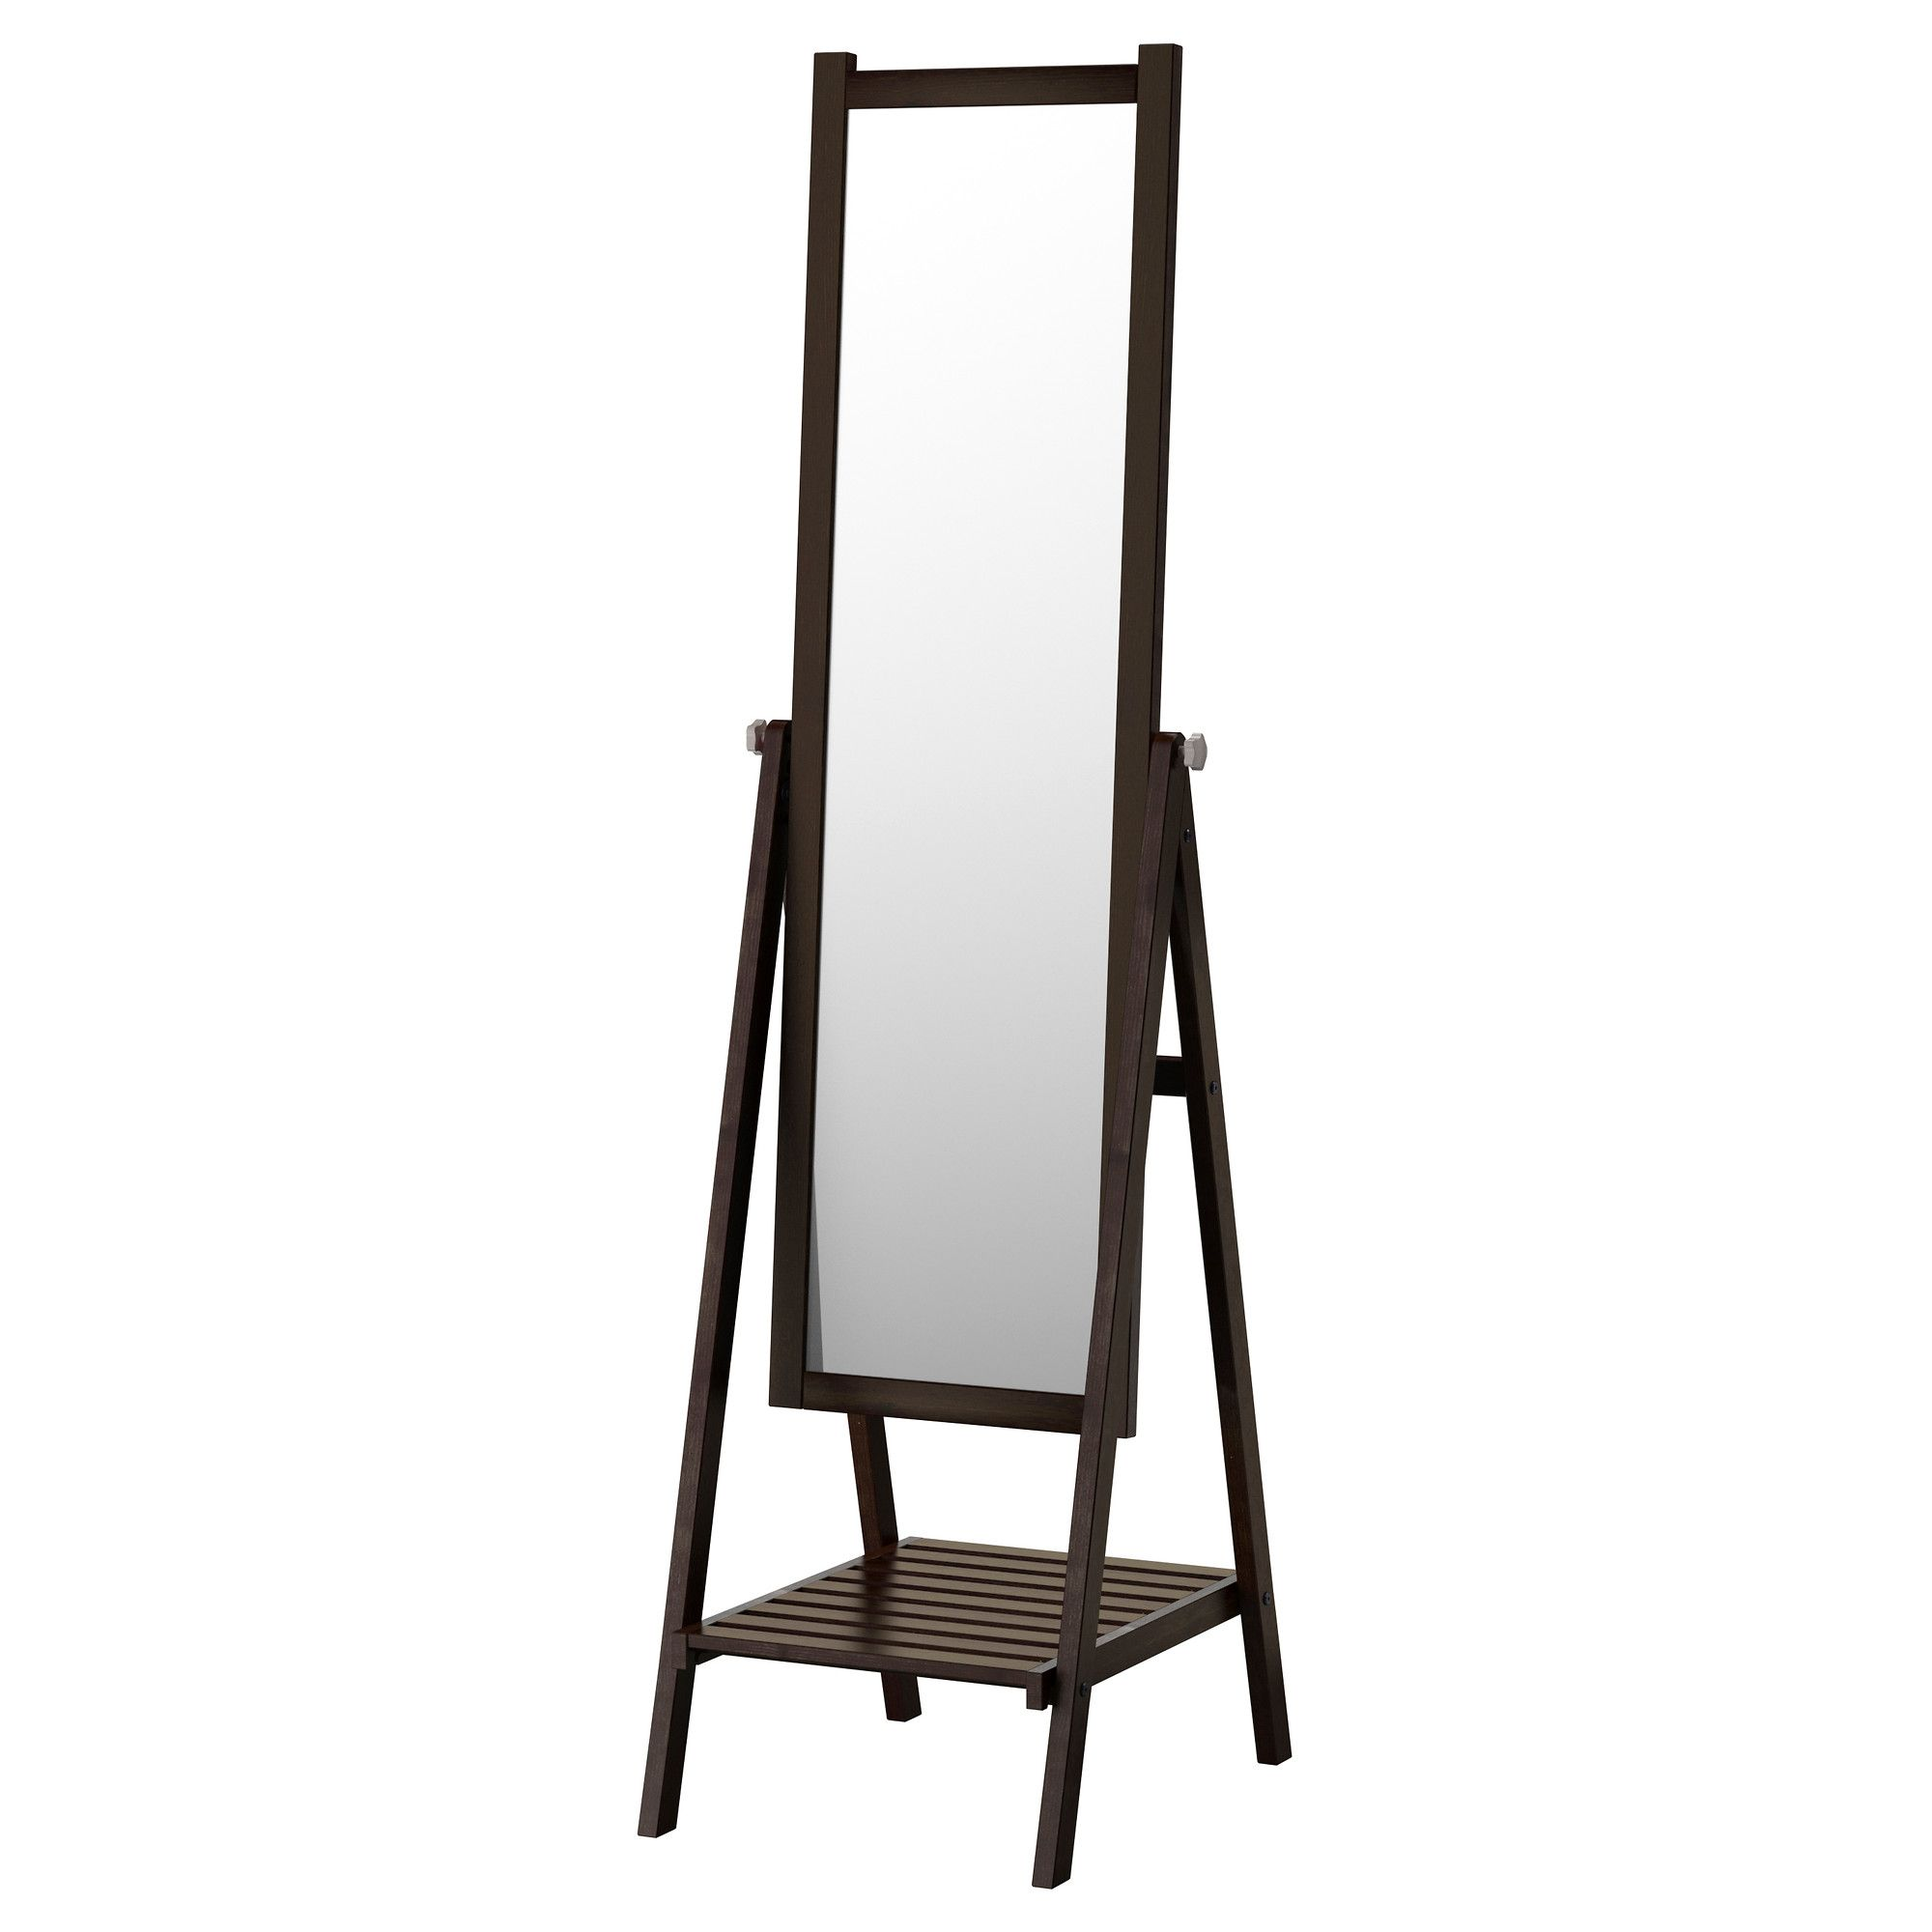 size subway large art long bedroom mirr floor length uk compact brandtworksllc for mirrors sale of mirror full ikea canada elite silver wall mounted